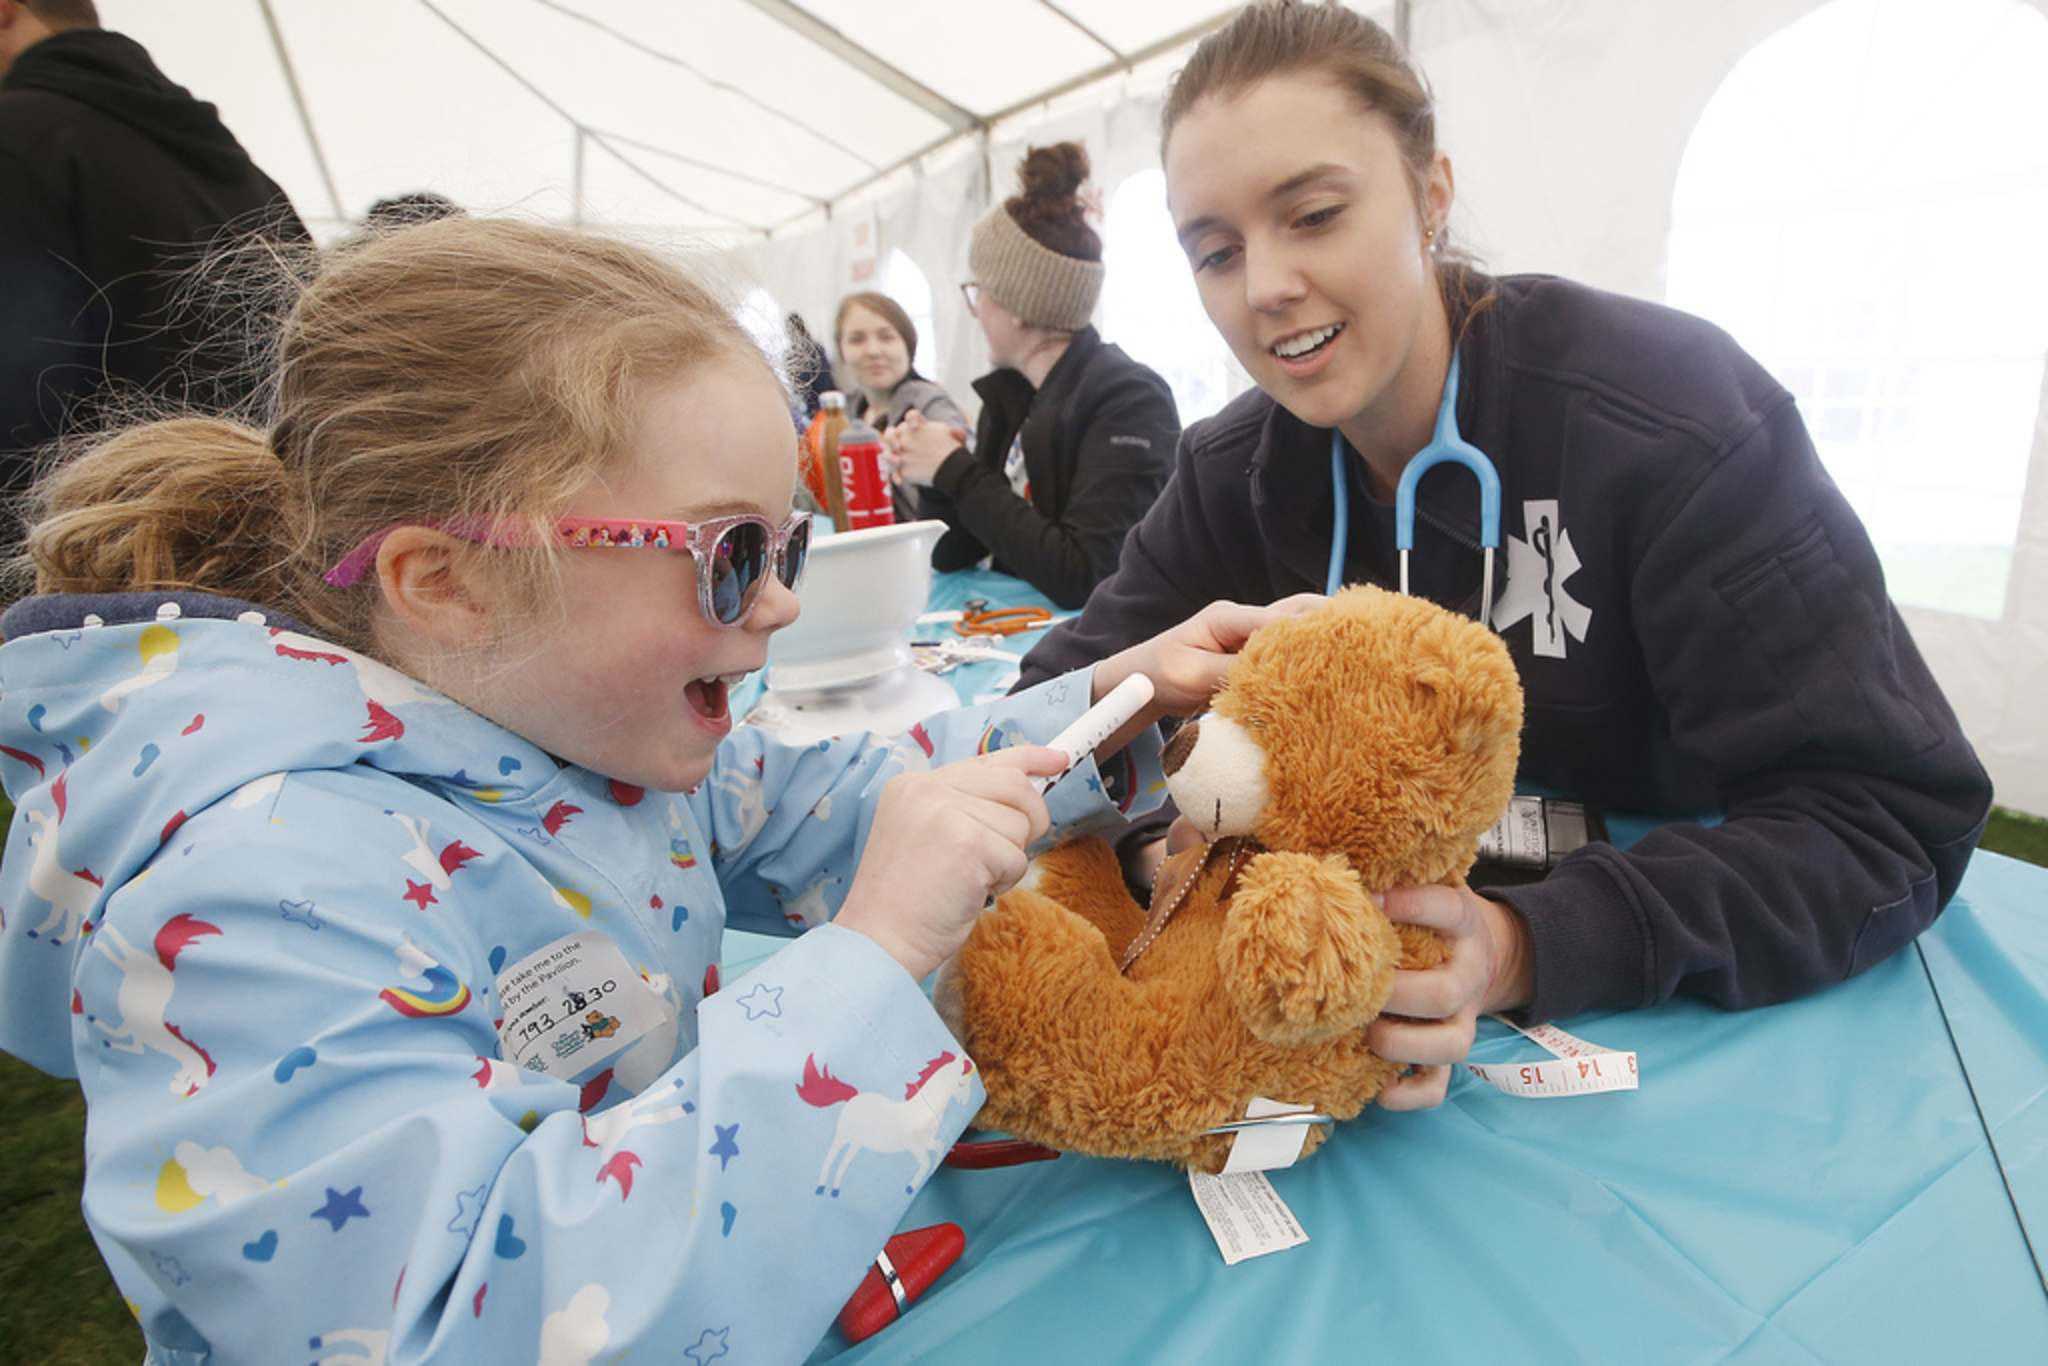 JOHN WOODS / WINNIPEG FREE PRESS FILES</p><p>Millie Hannah inspects her bear's eyes at the Teddy Bear Picnic in Assiniboine Park last May. The annual event held by the Children's Hospital Foundation of Manitoba will move to the web this year with a new 'Gone Virtual' theme.</p>